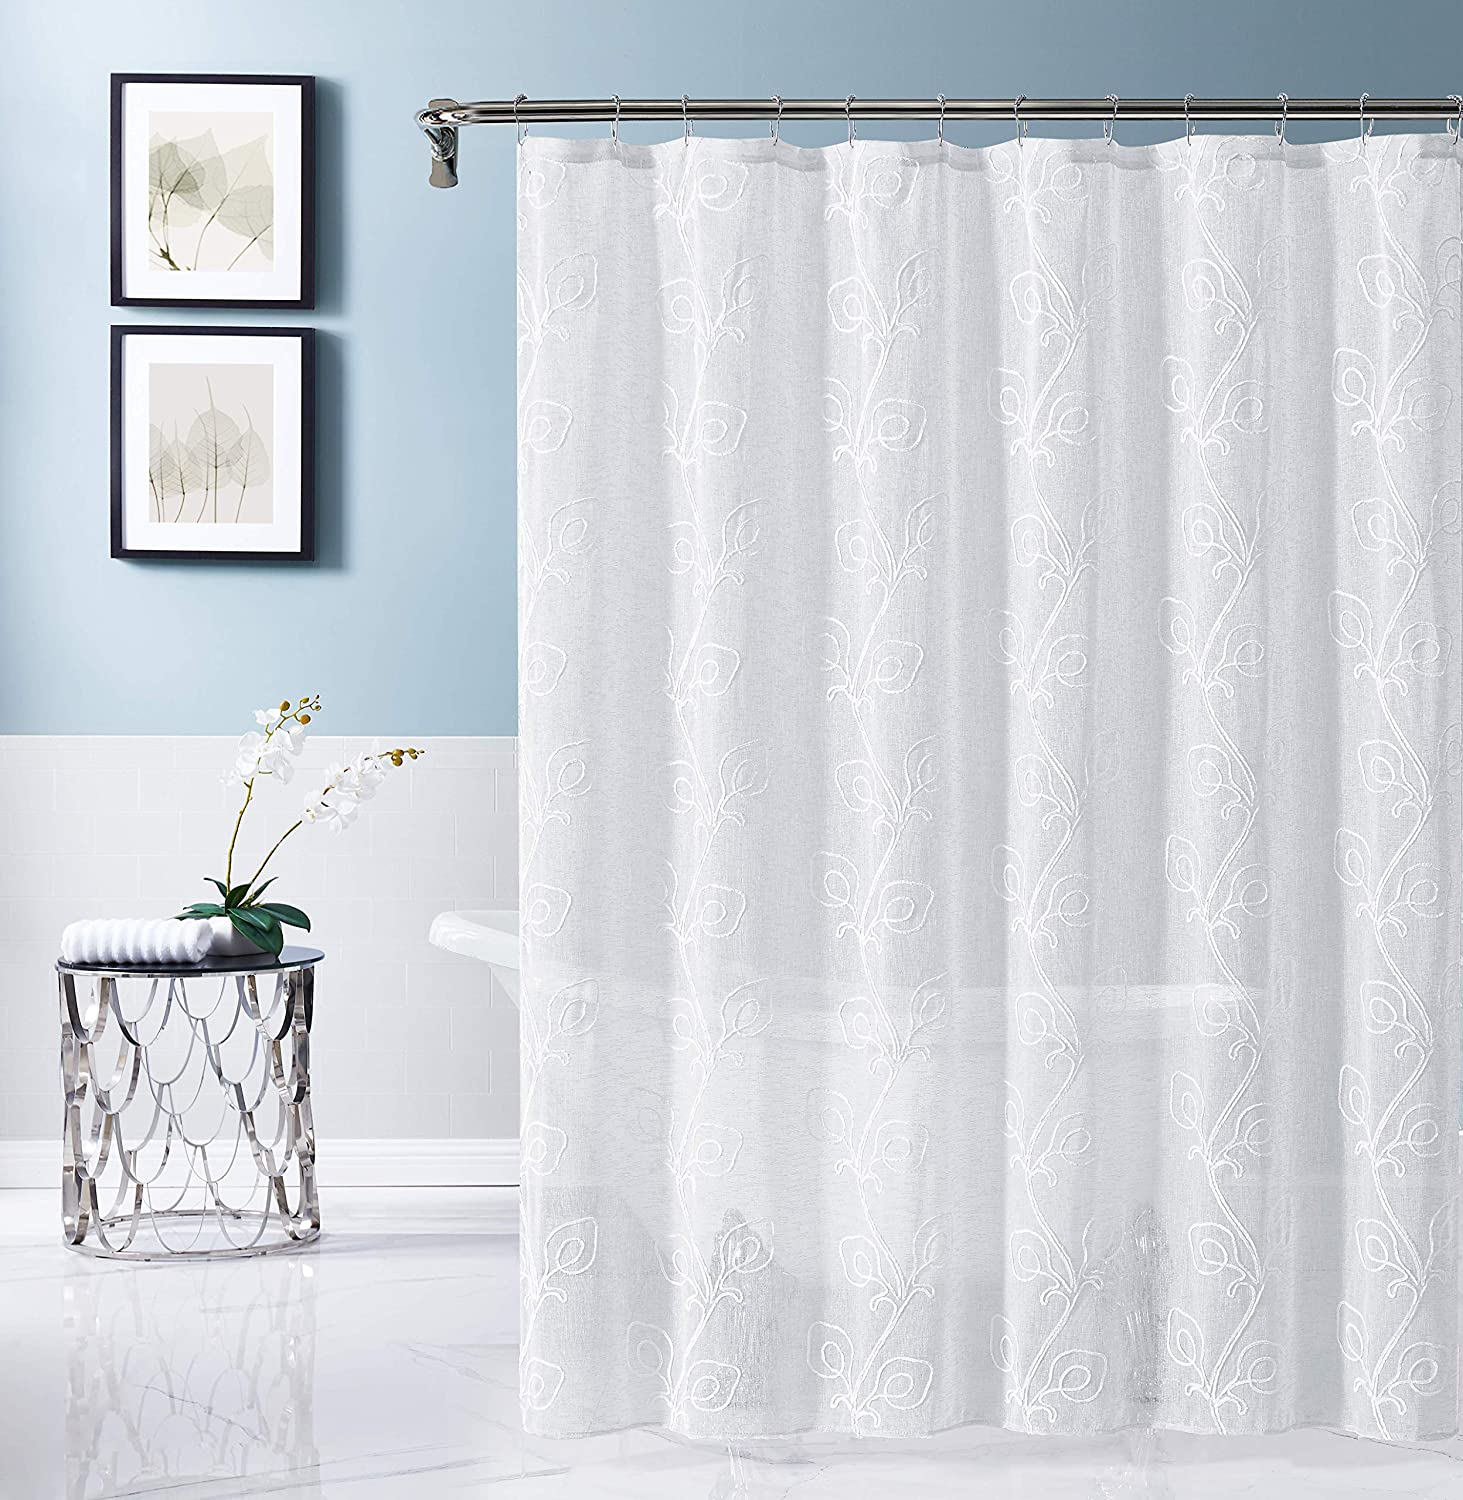 Dainty Home Stella Embroidered Fabric Shower Curtain, White/White